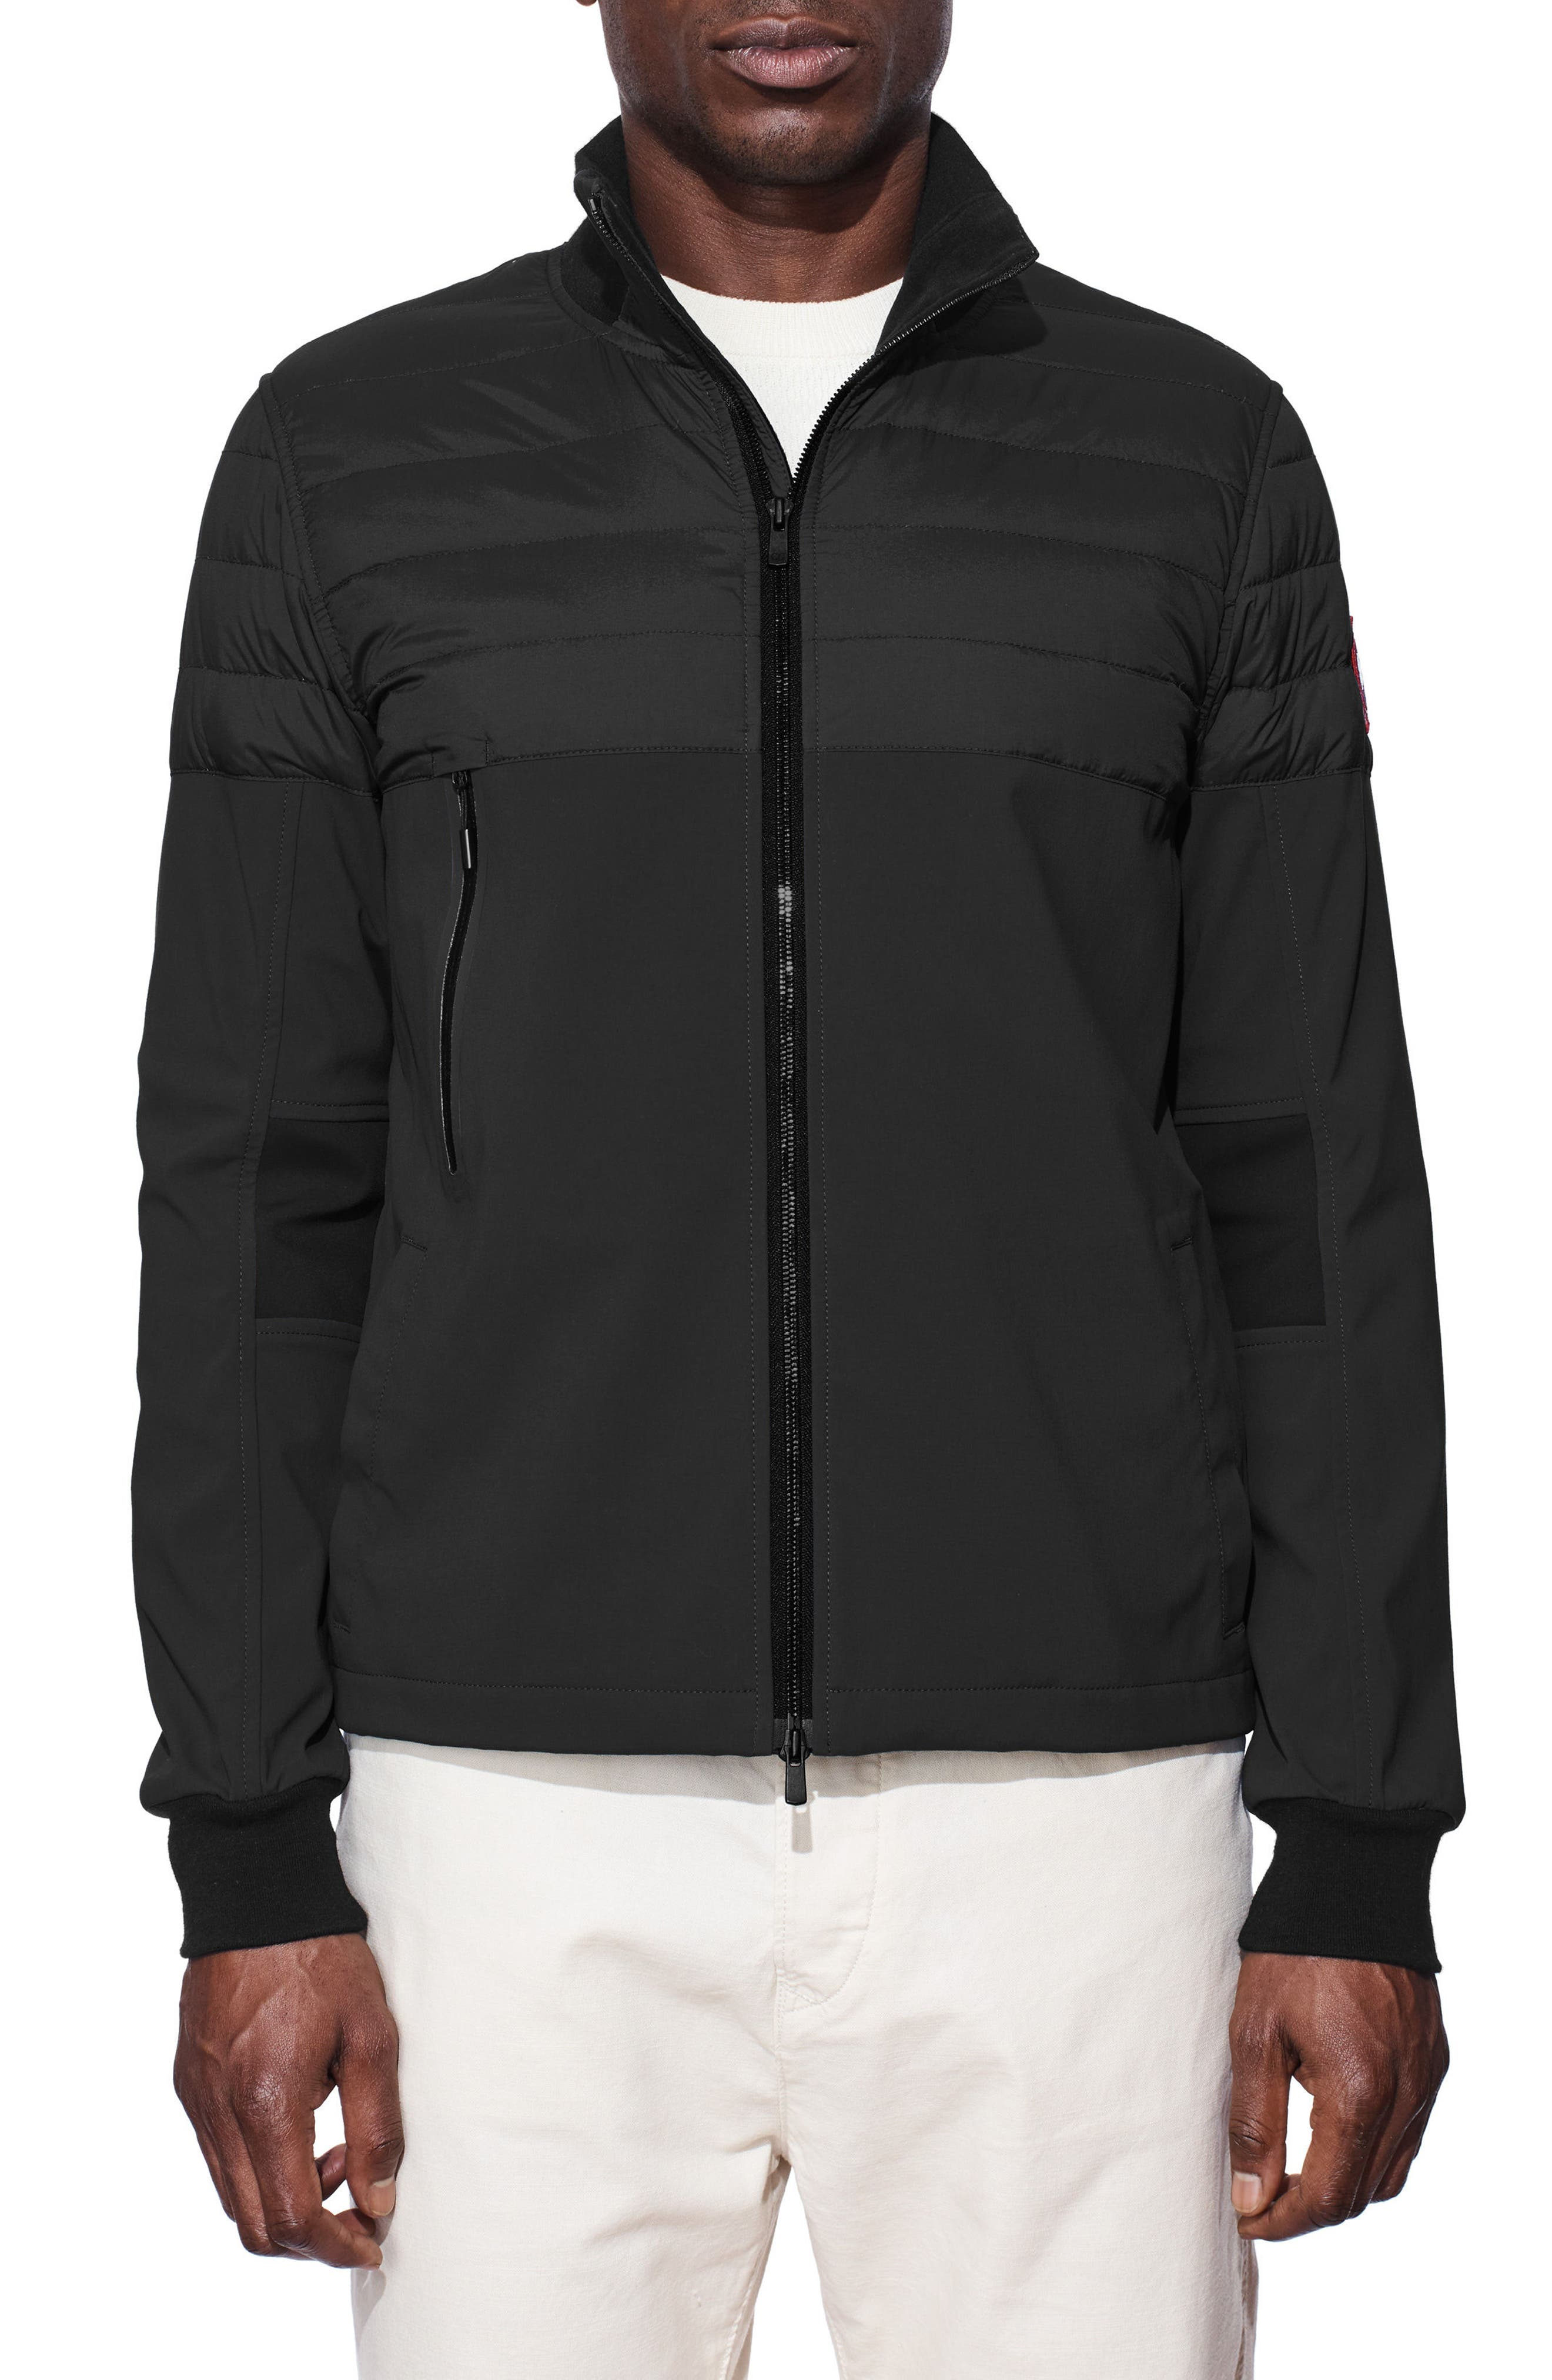 Canade Goose Jericho Beach Down Filled Jacket,                         Main,                         color, Black/ Black